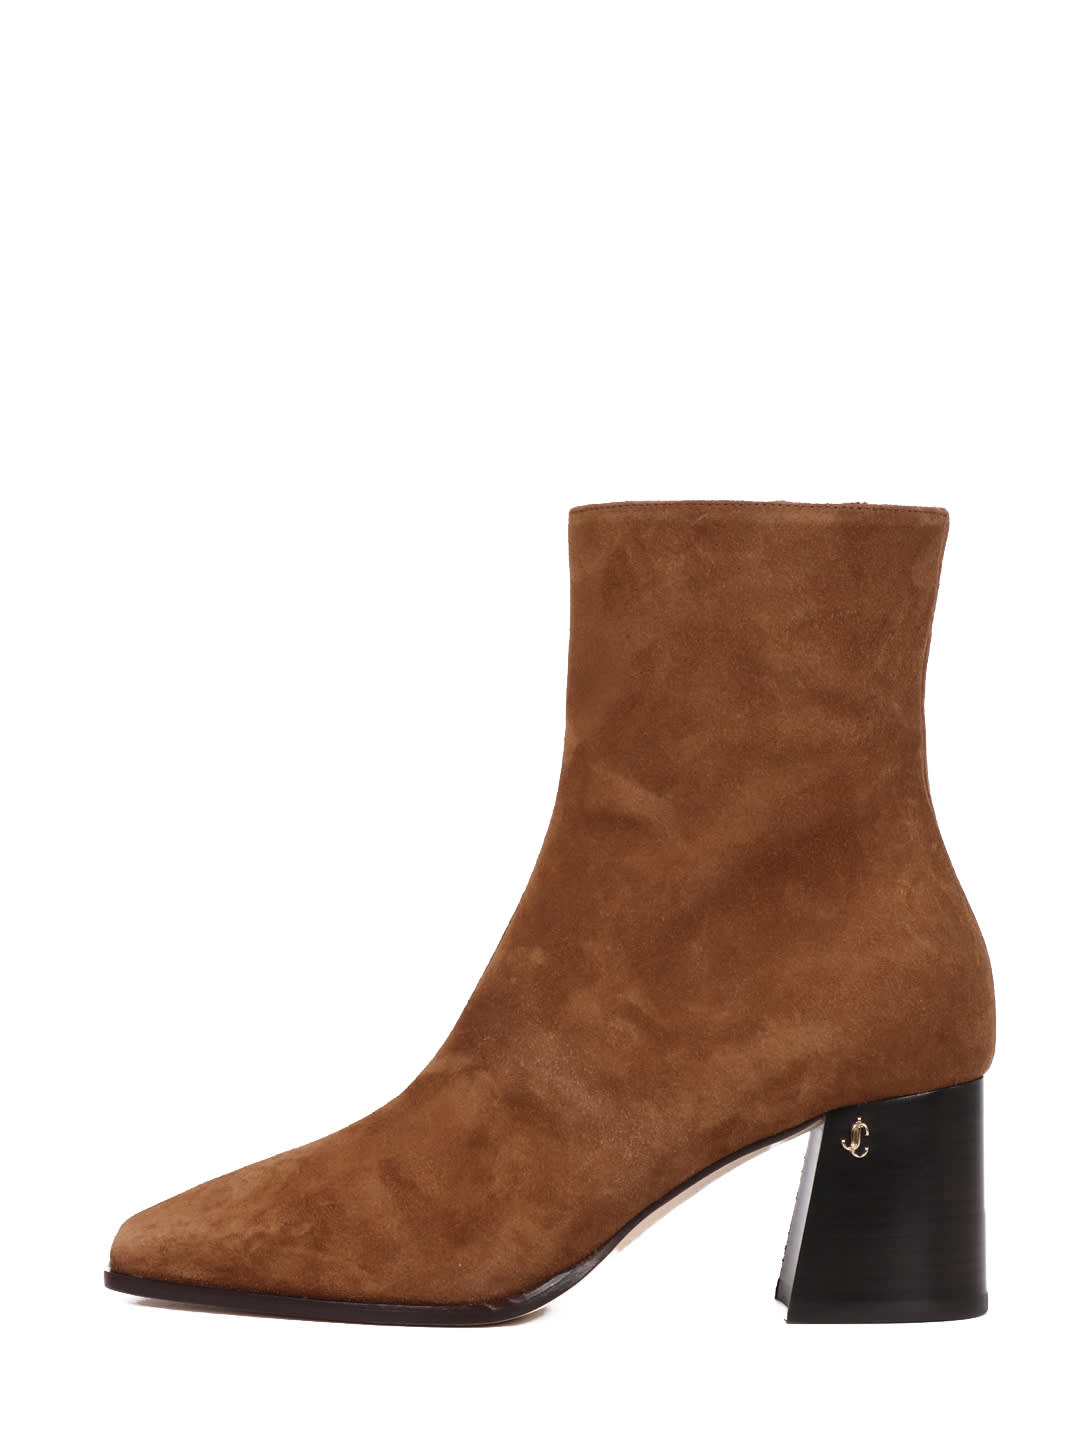 JIMMY CHOO BRYELLE ANKLE BOOTS